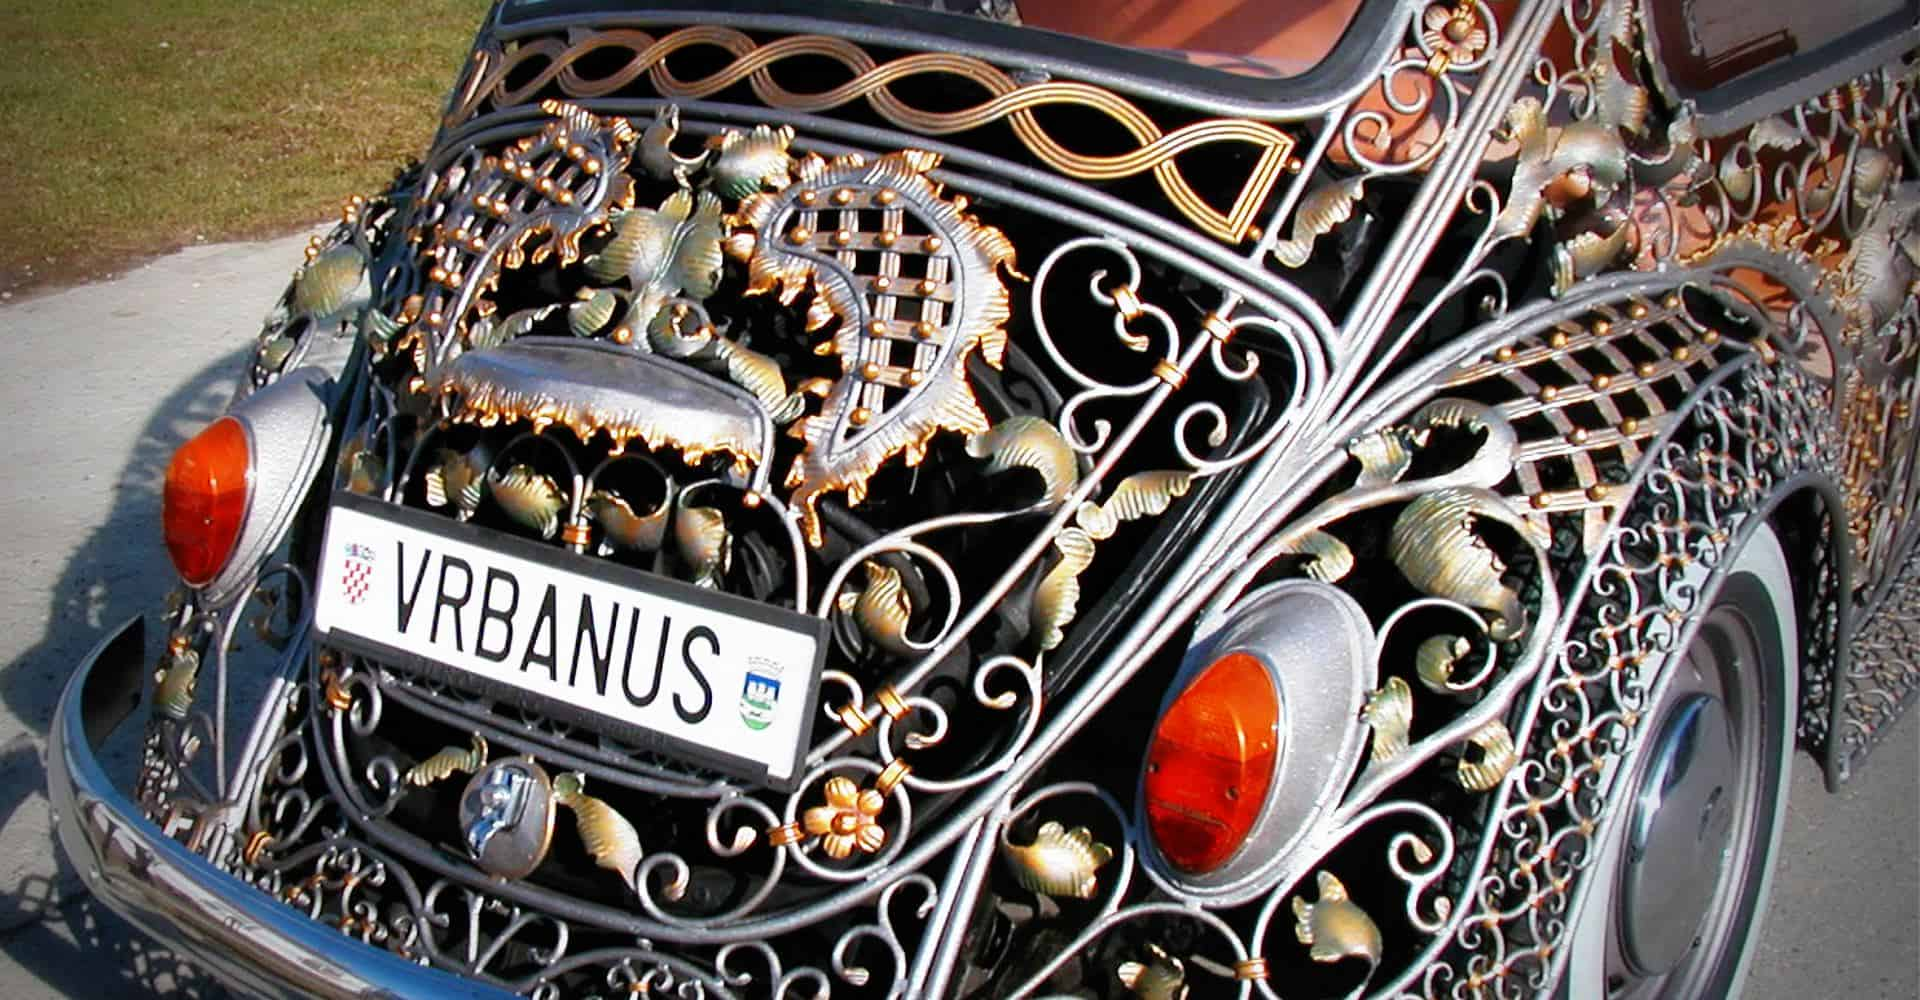 Wrought Iron Beetle by VrBanus Tail Light Detail